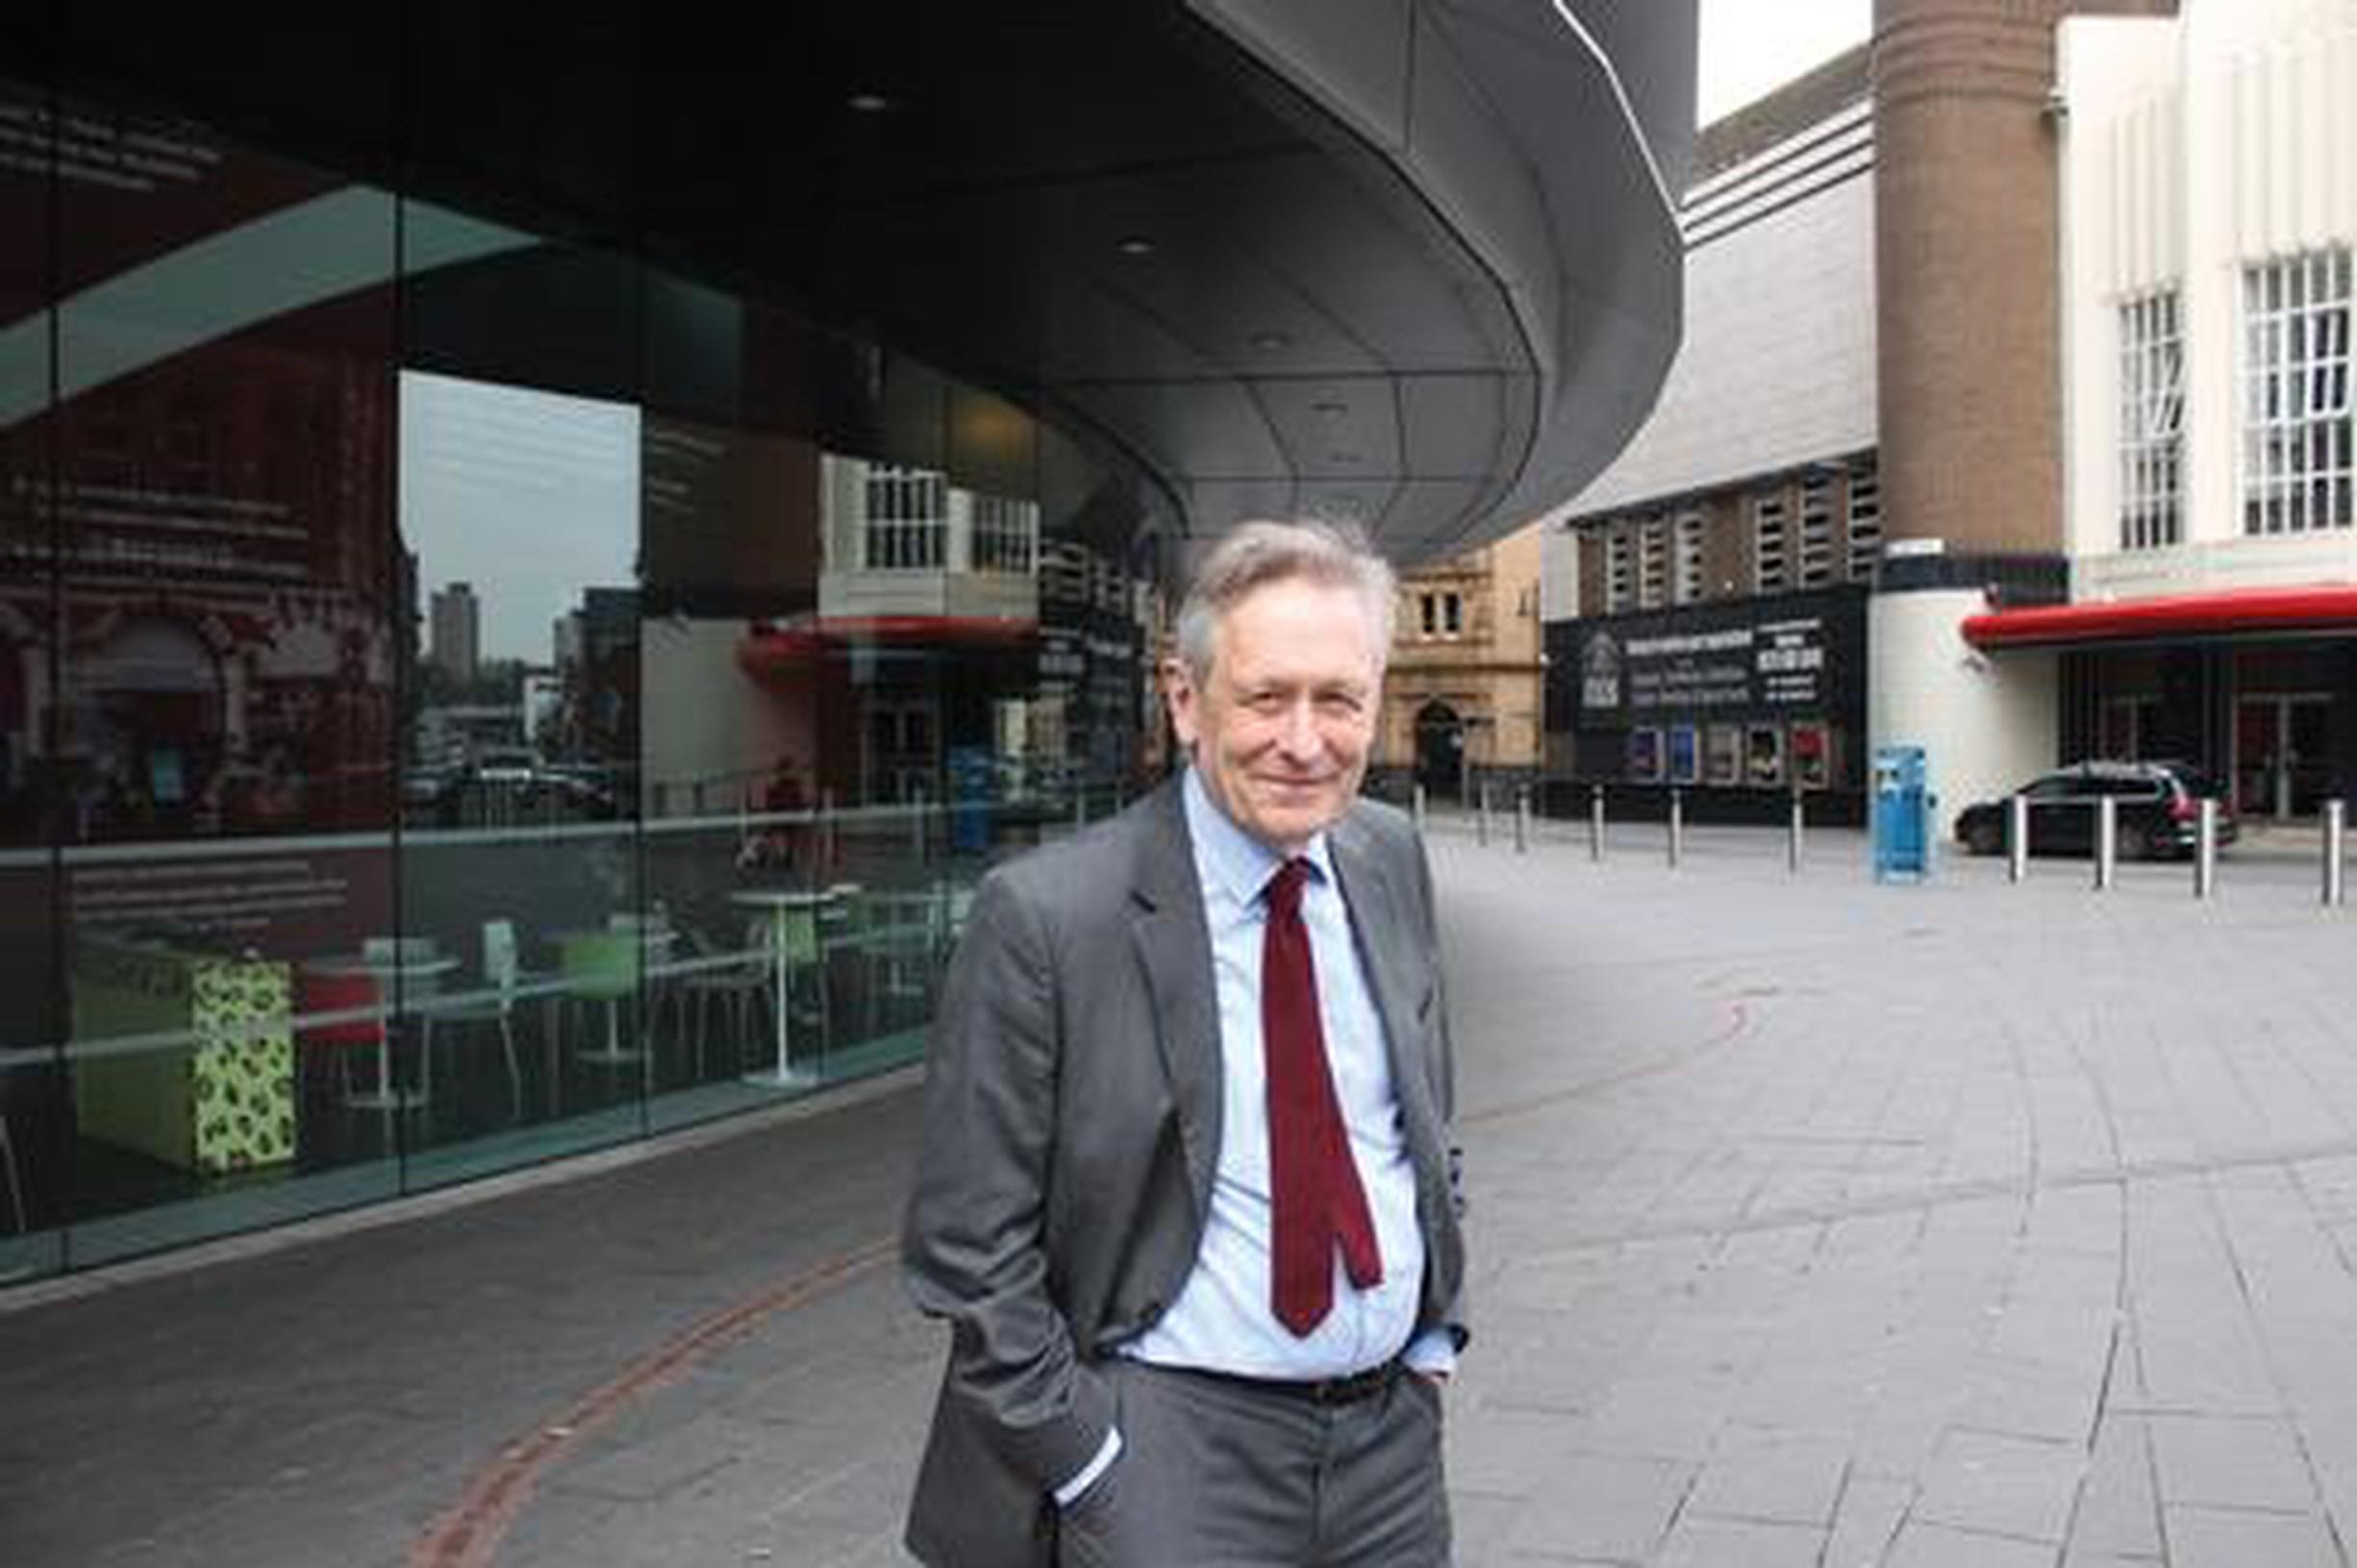 Peter Soulsby: This money is the second phase of work which began in 2016/17 to look at parking issues citywide, and what we could do to improve the situation.